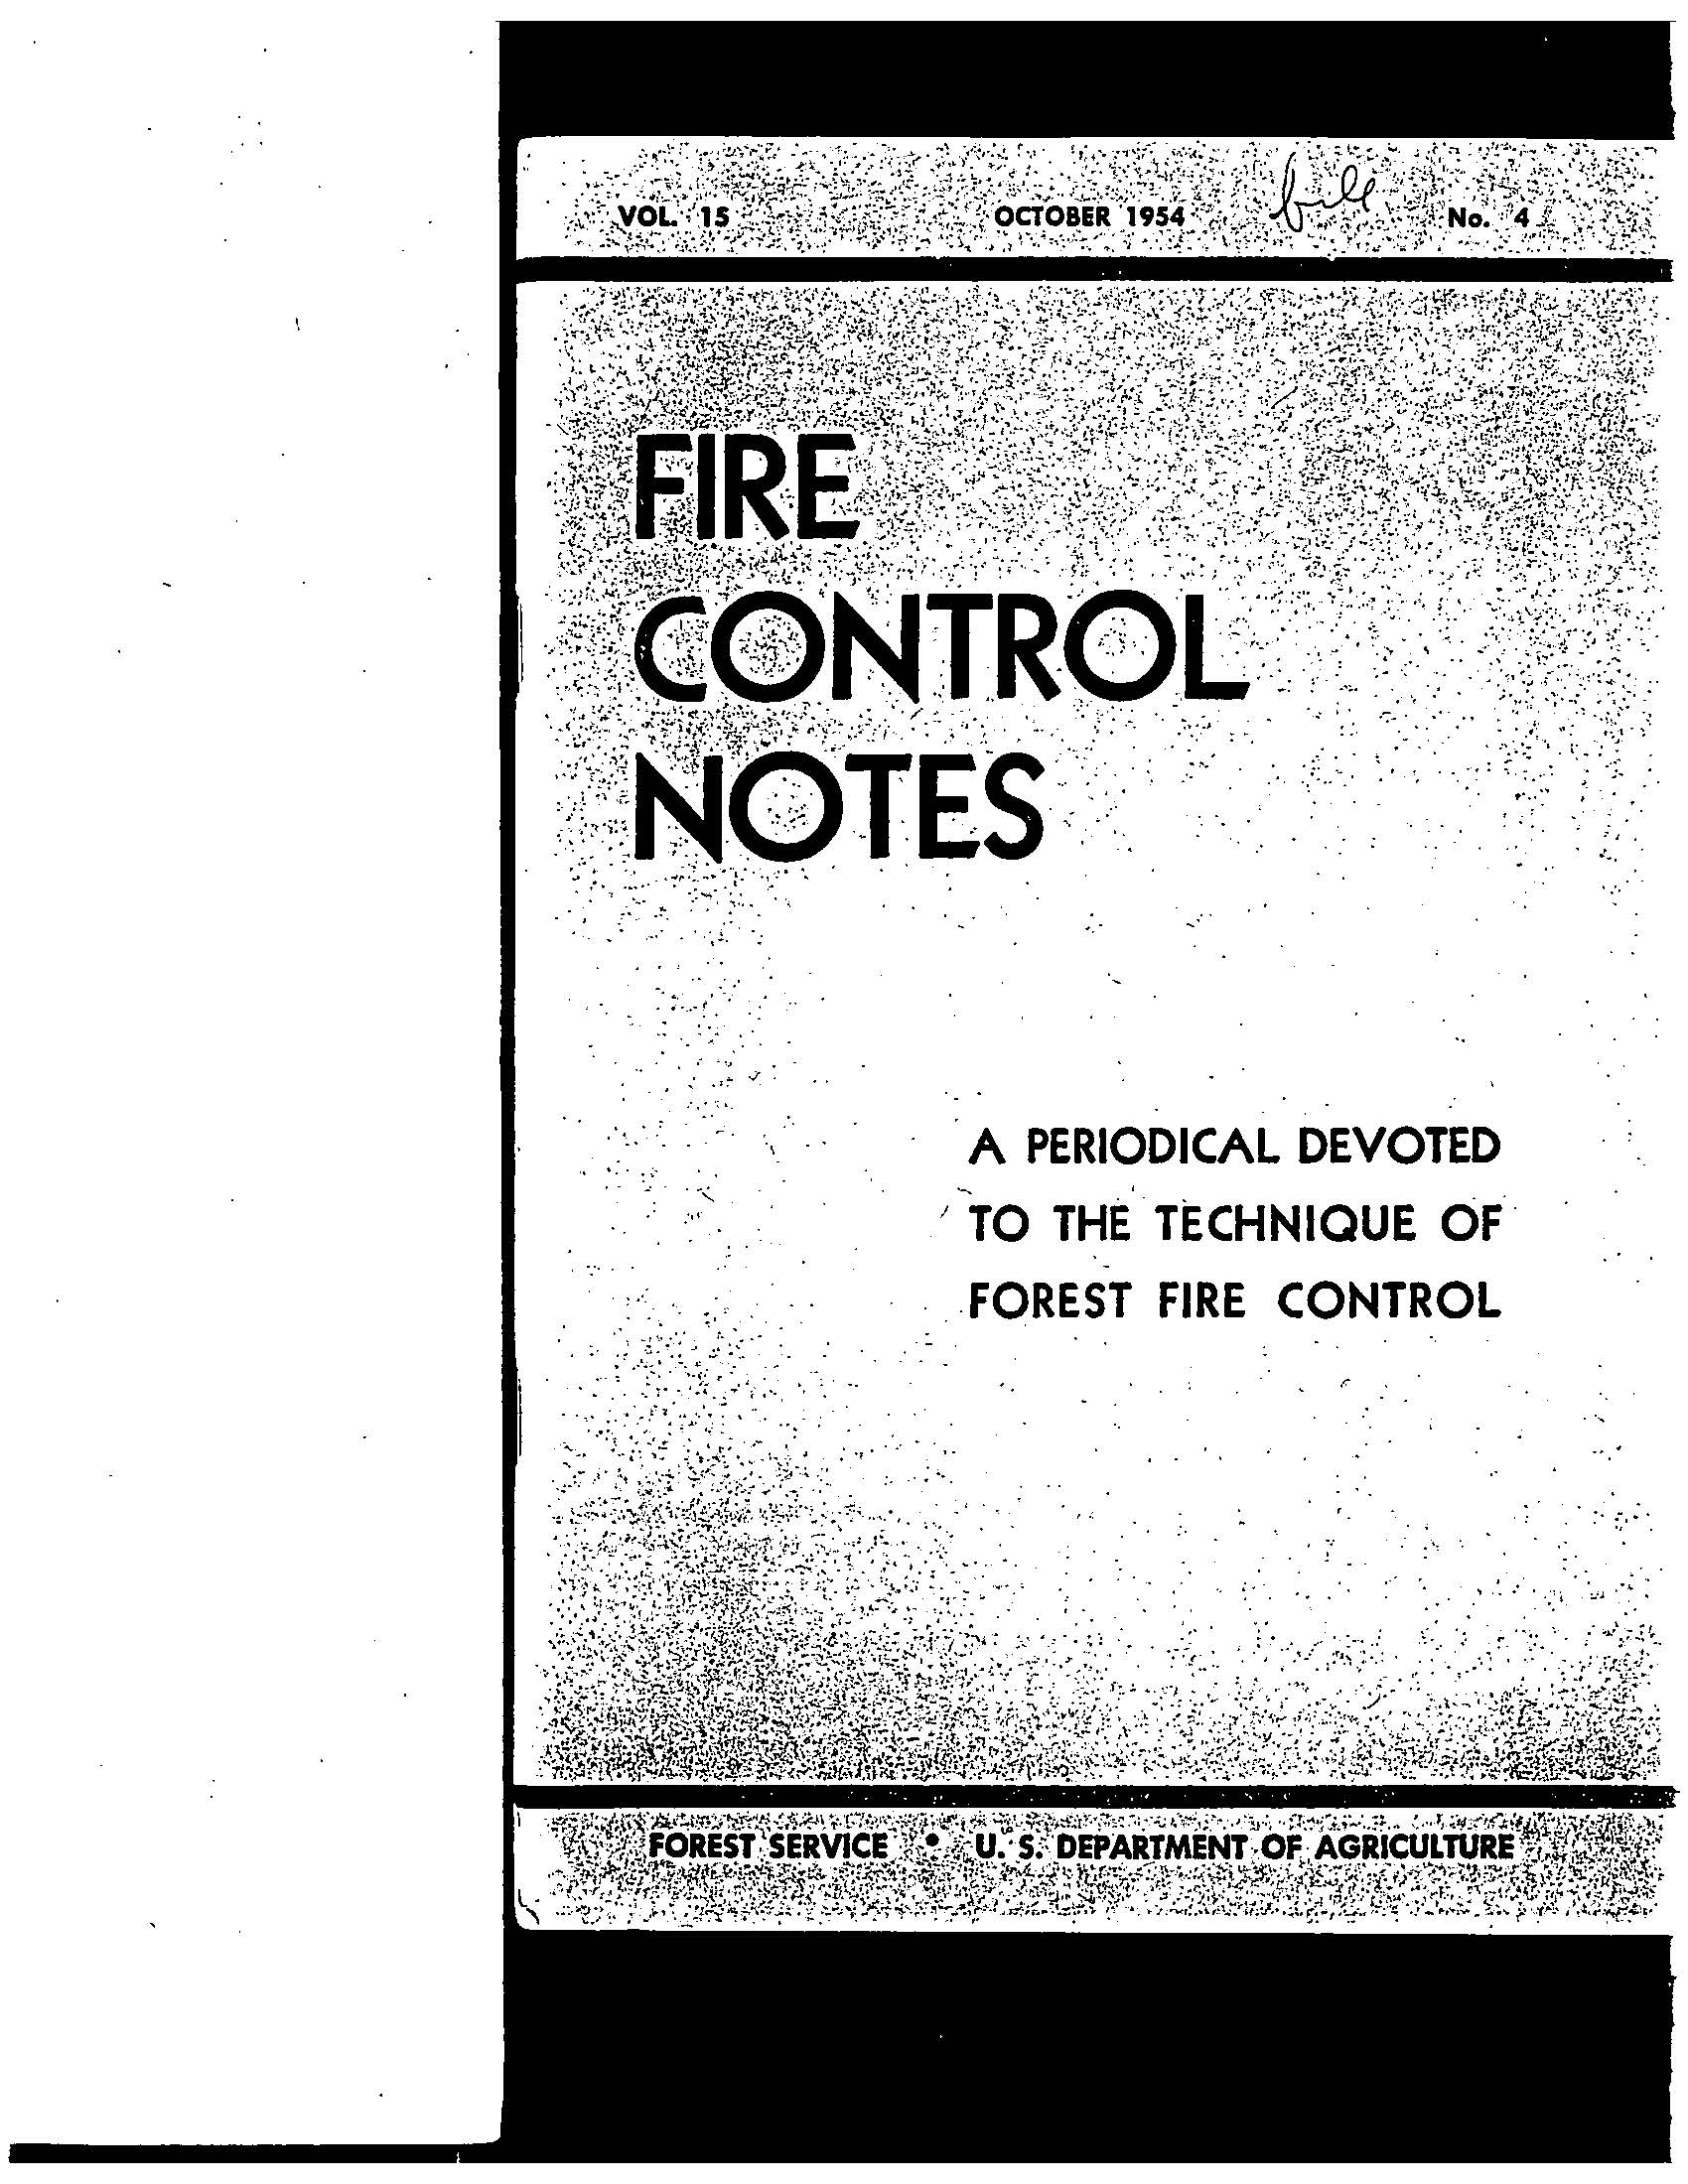 Cover of Fire Management Today Volume 15, Issue 04